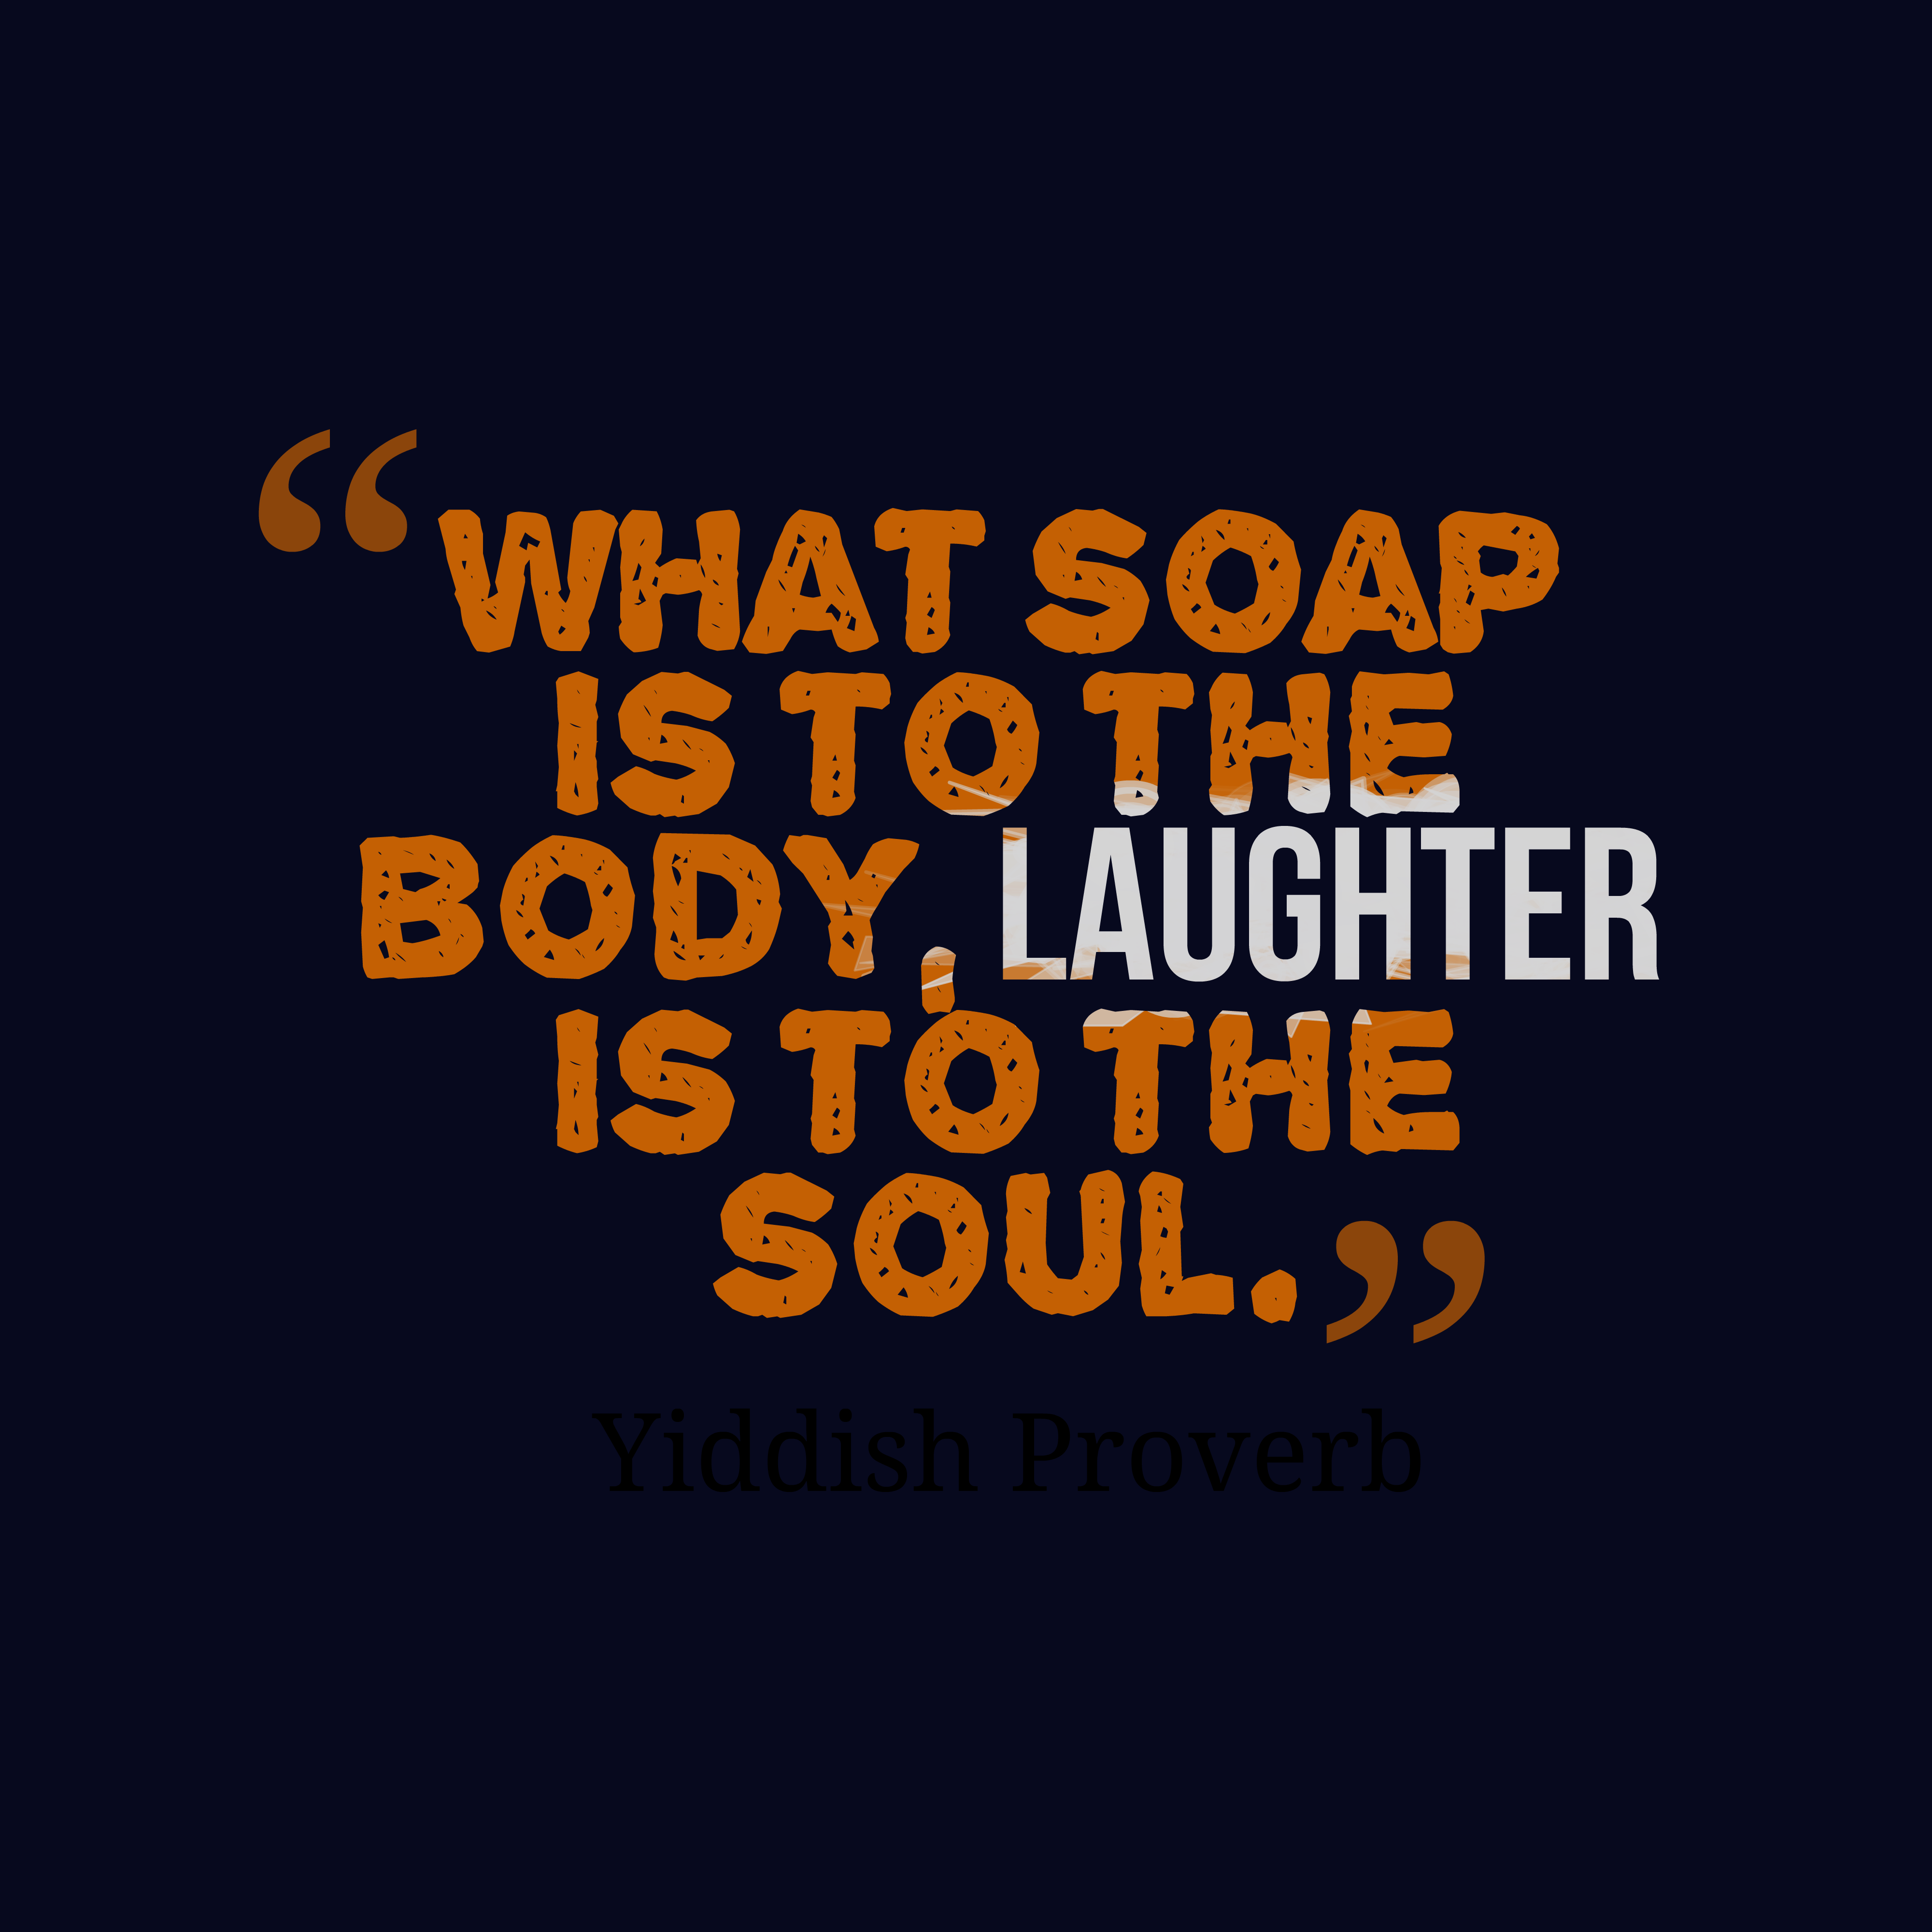 Quotes image of What soap is to the body, laughter is to the soul.